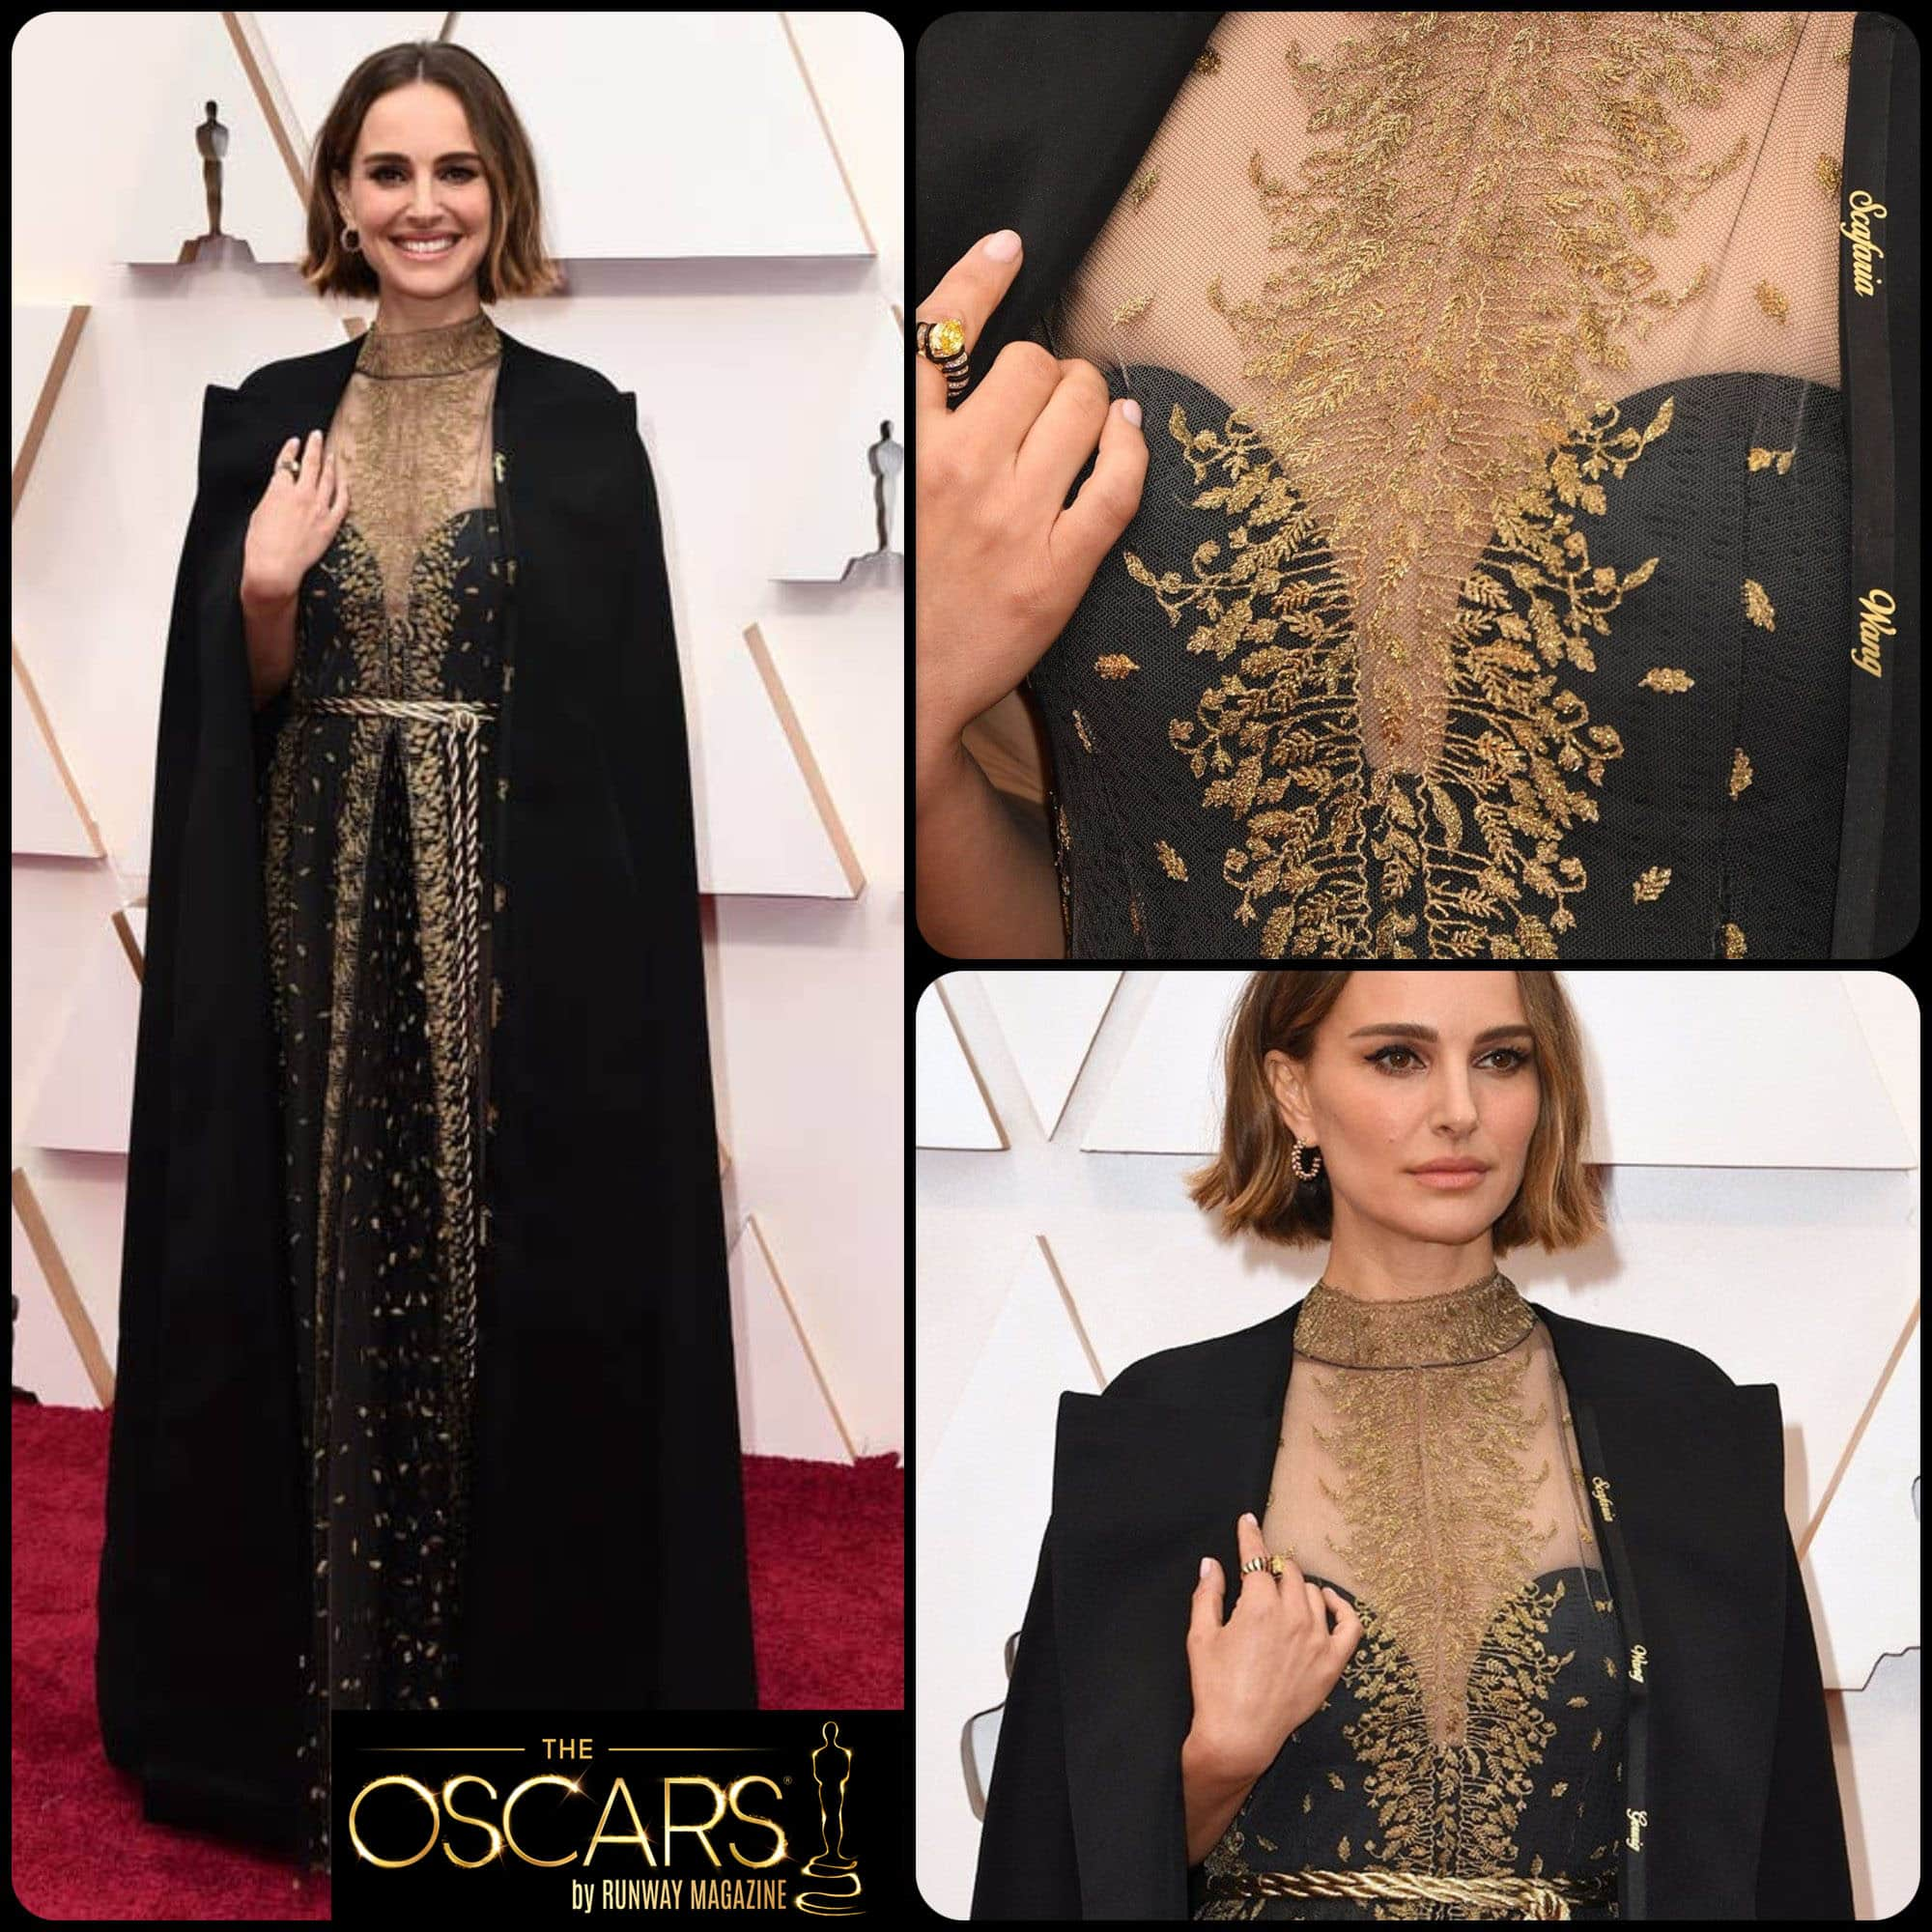 Natalie Portman in DIOR Haute Couture custom dress at the 2020 Oscars by RUNWAY MAGAZINE